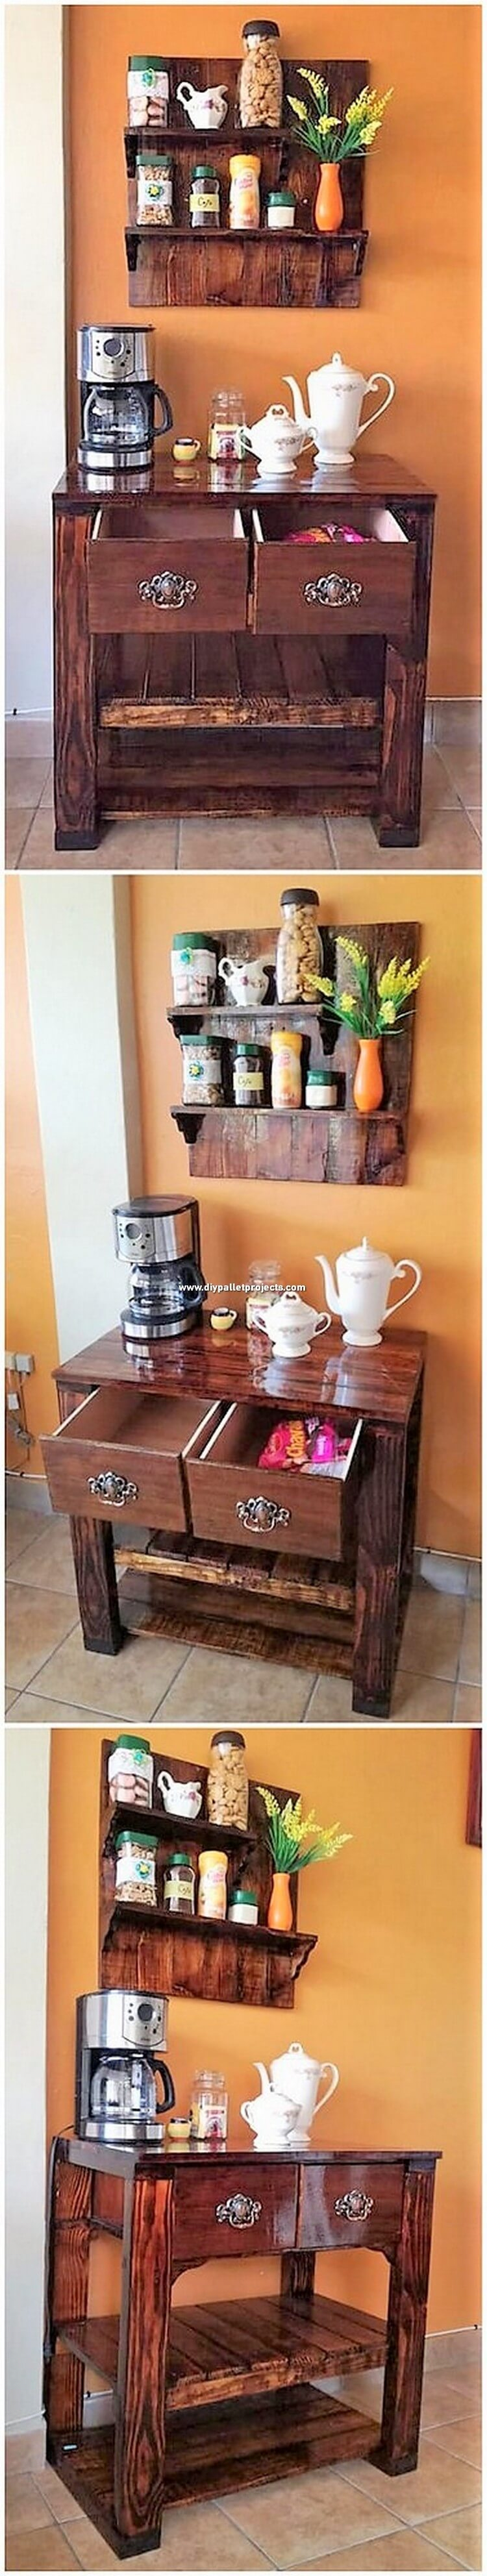 Pallet Table with Drawers and Wall Shelf